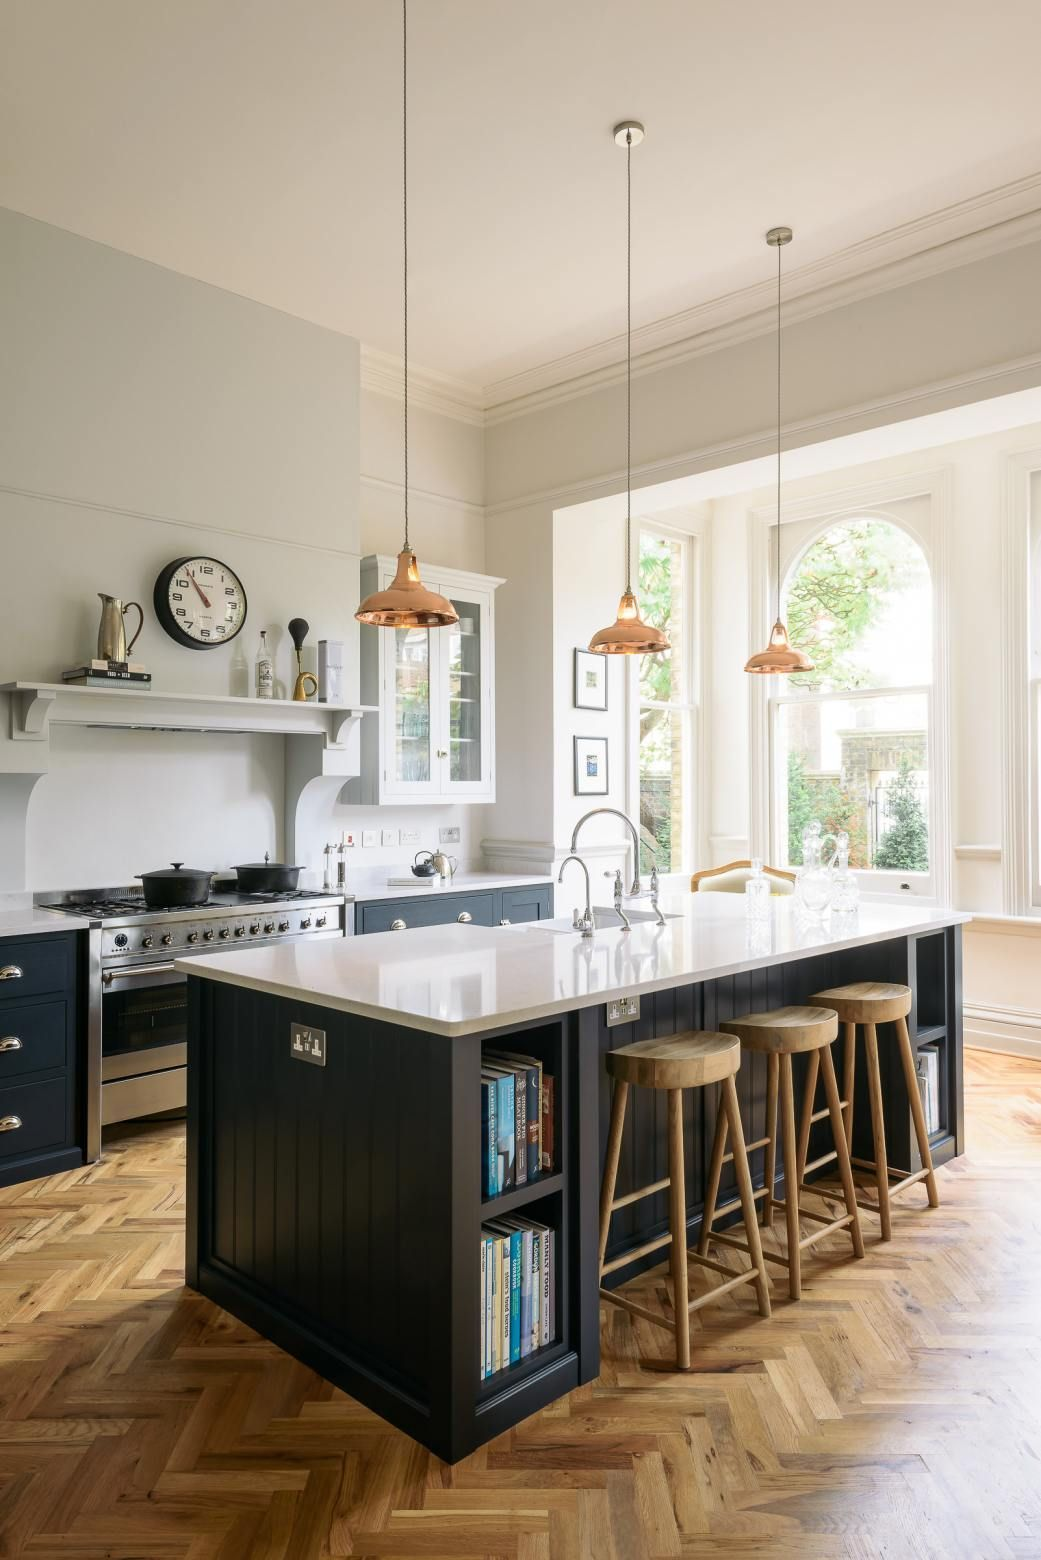 29+ Small Kitchen Lighting Ideas Pictures for Low Ceilings ...